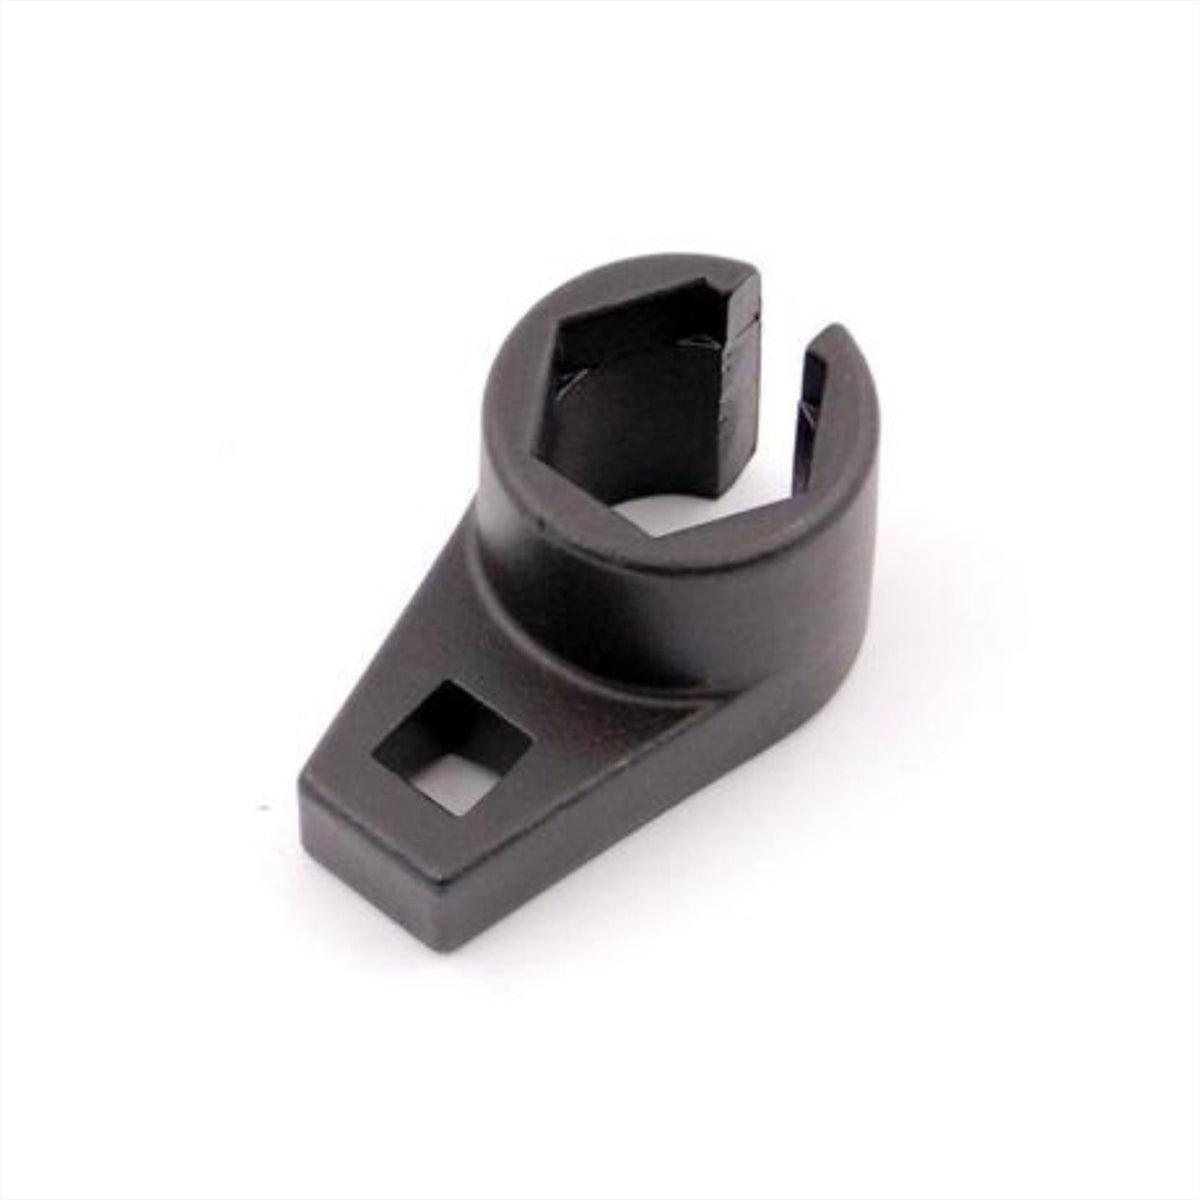 "22mm Oxygen Sensor Wrench With 3/8"" Square Drive"